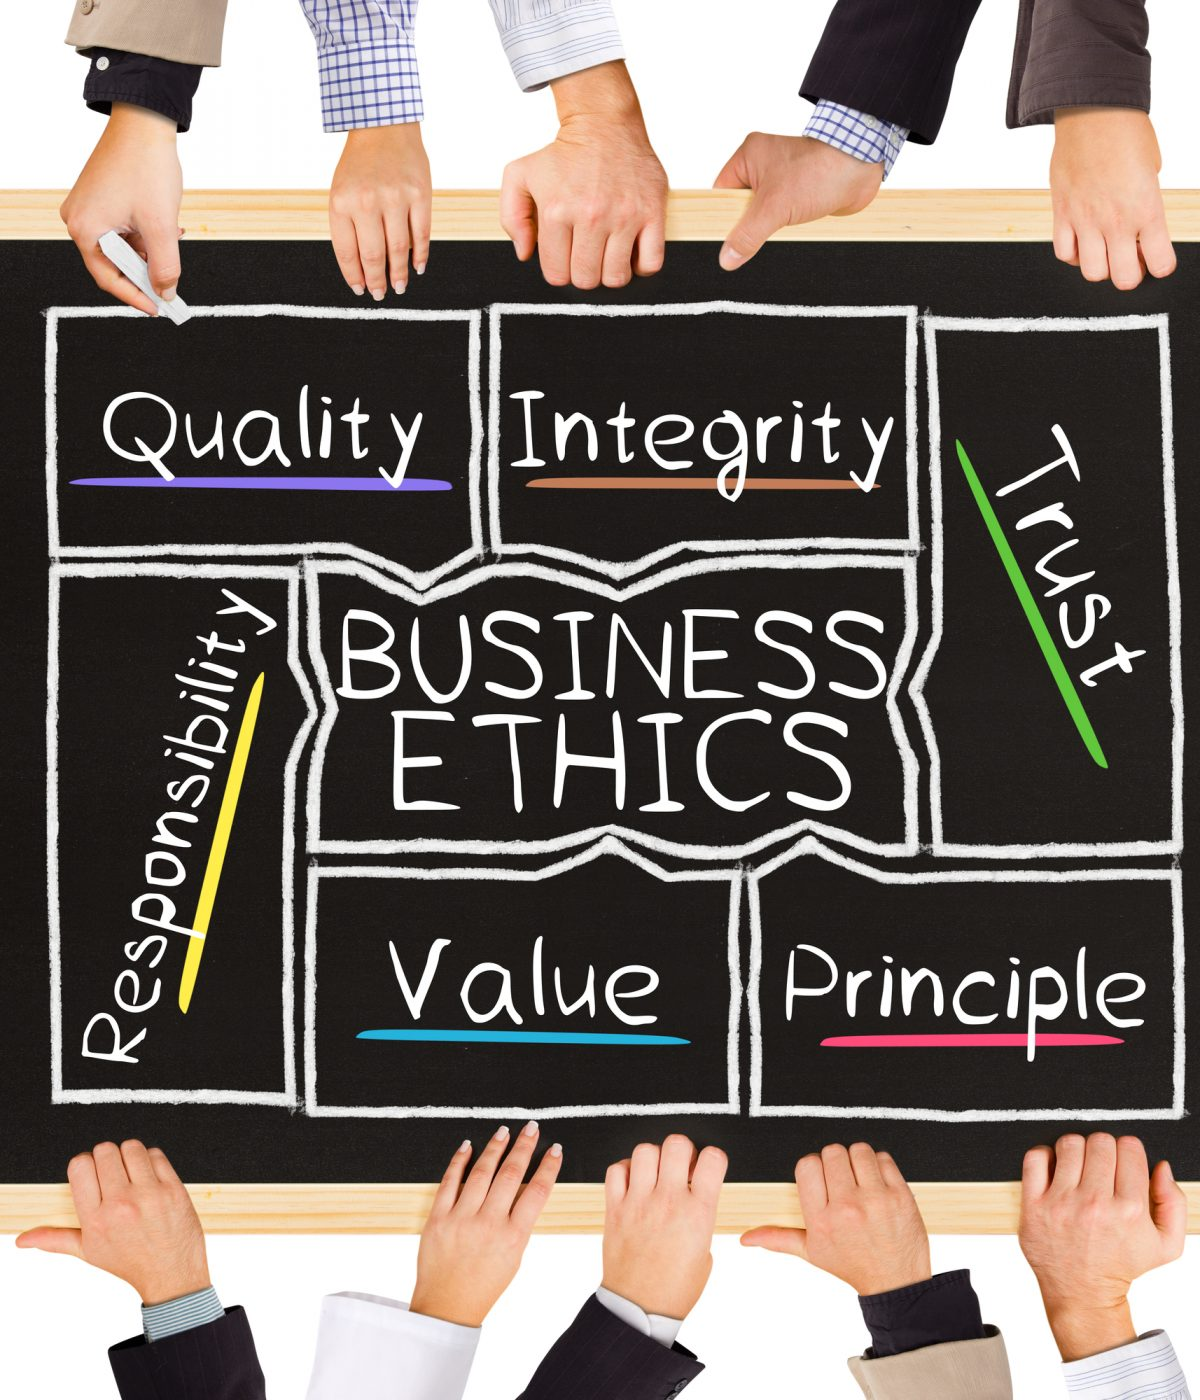 Business Ethics in Dublin, Ireland - Is unpaid work ethical